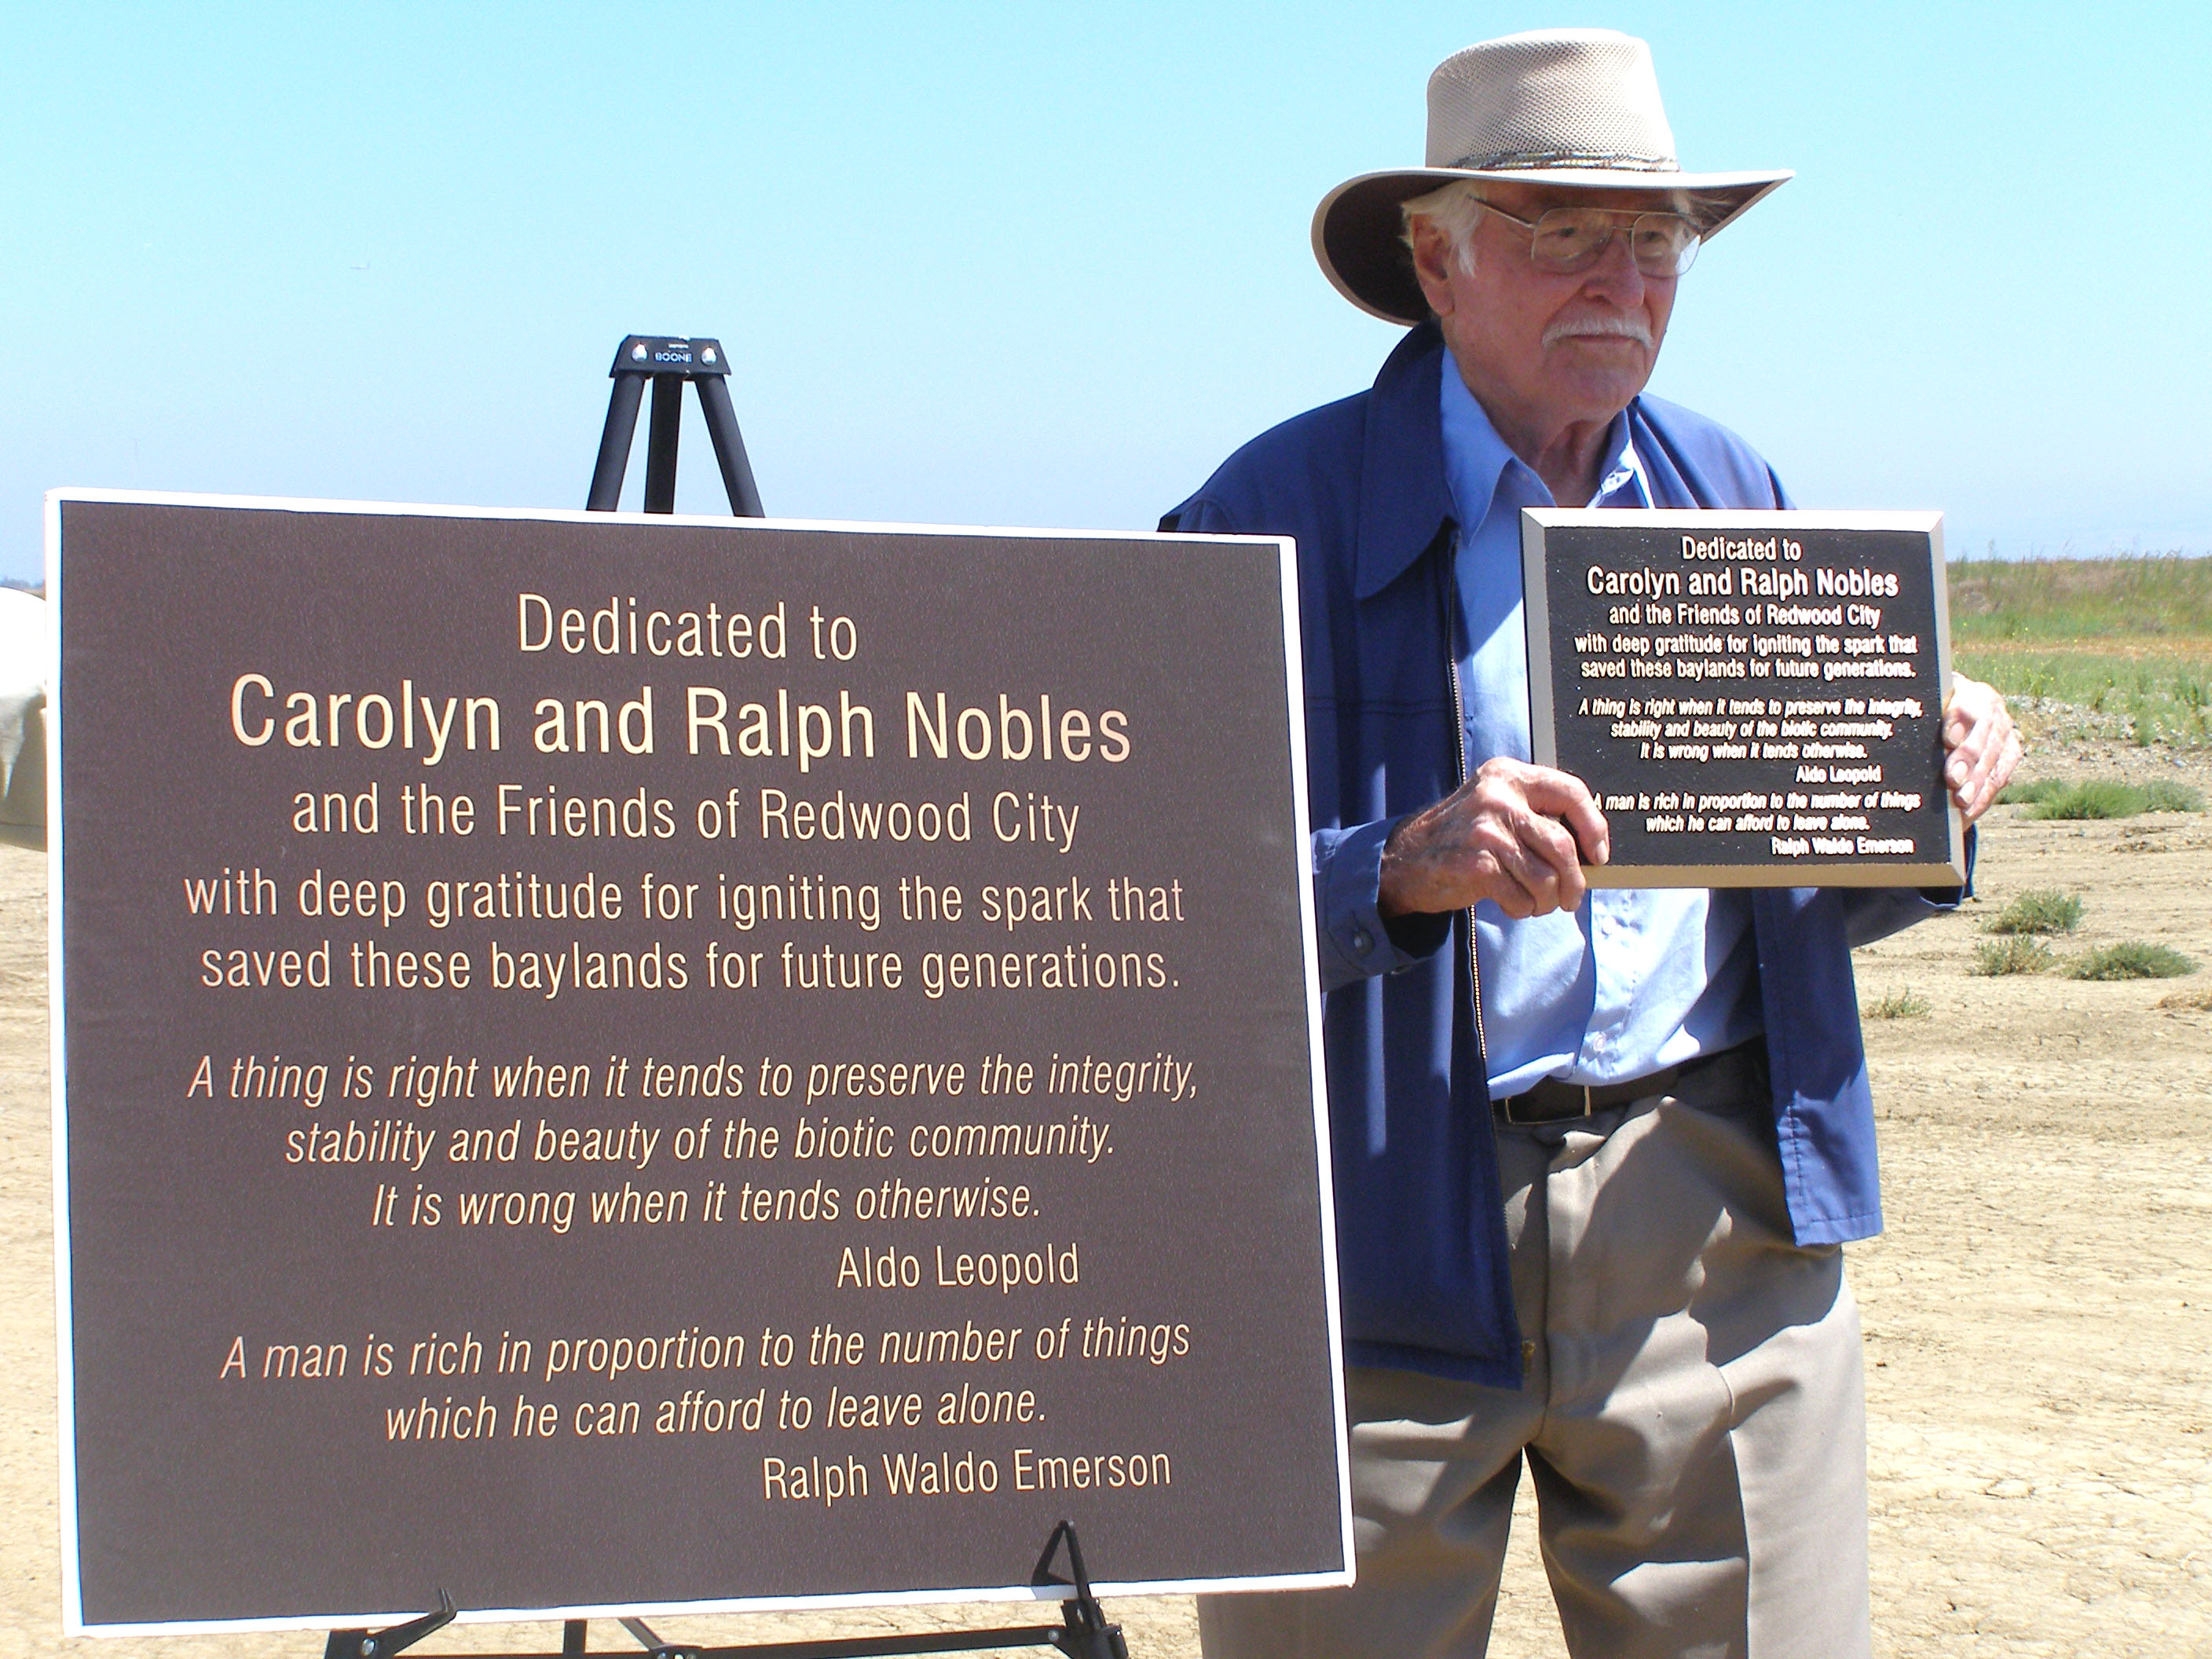 Dedication to Carolyn and Ralph Nobles Carin